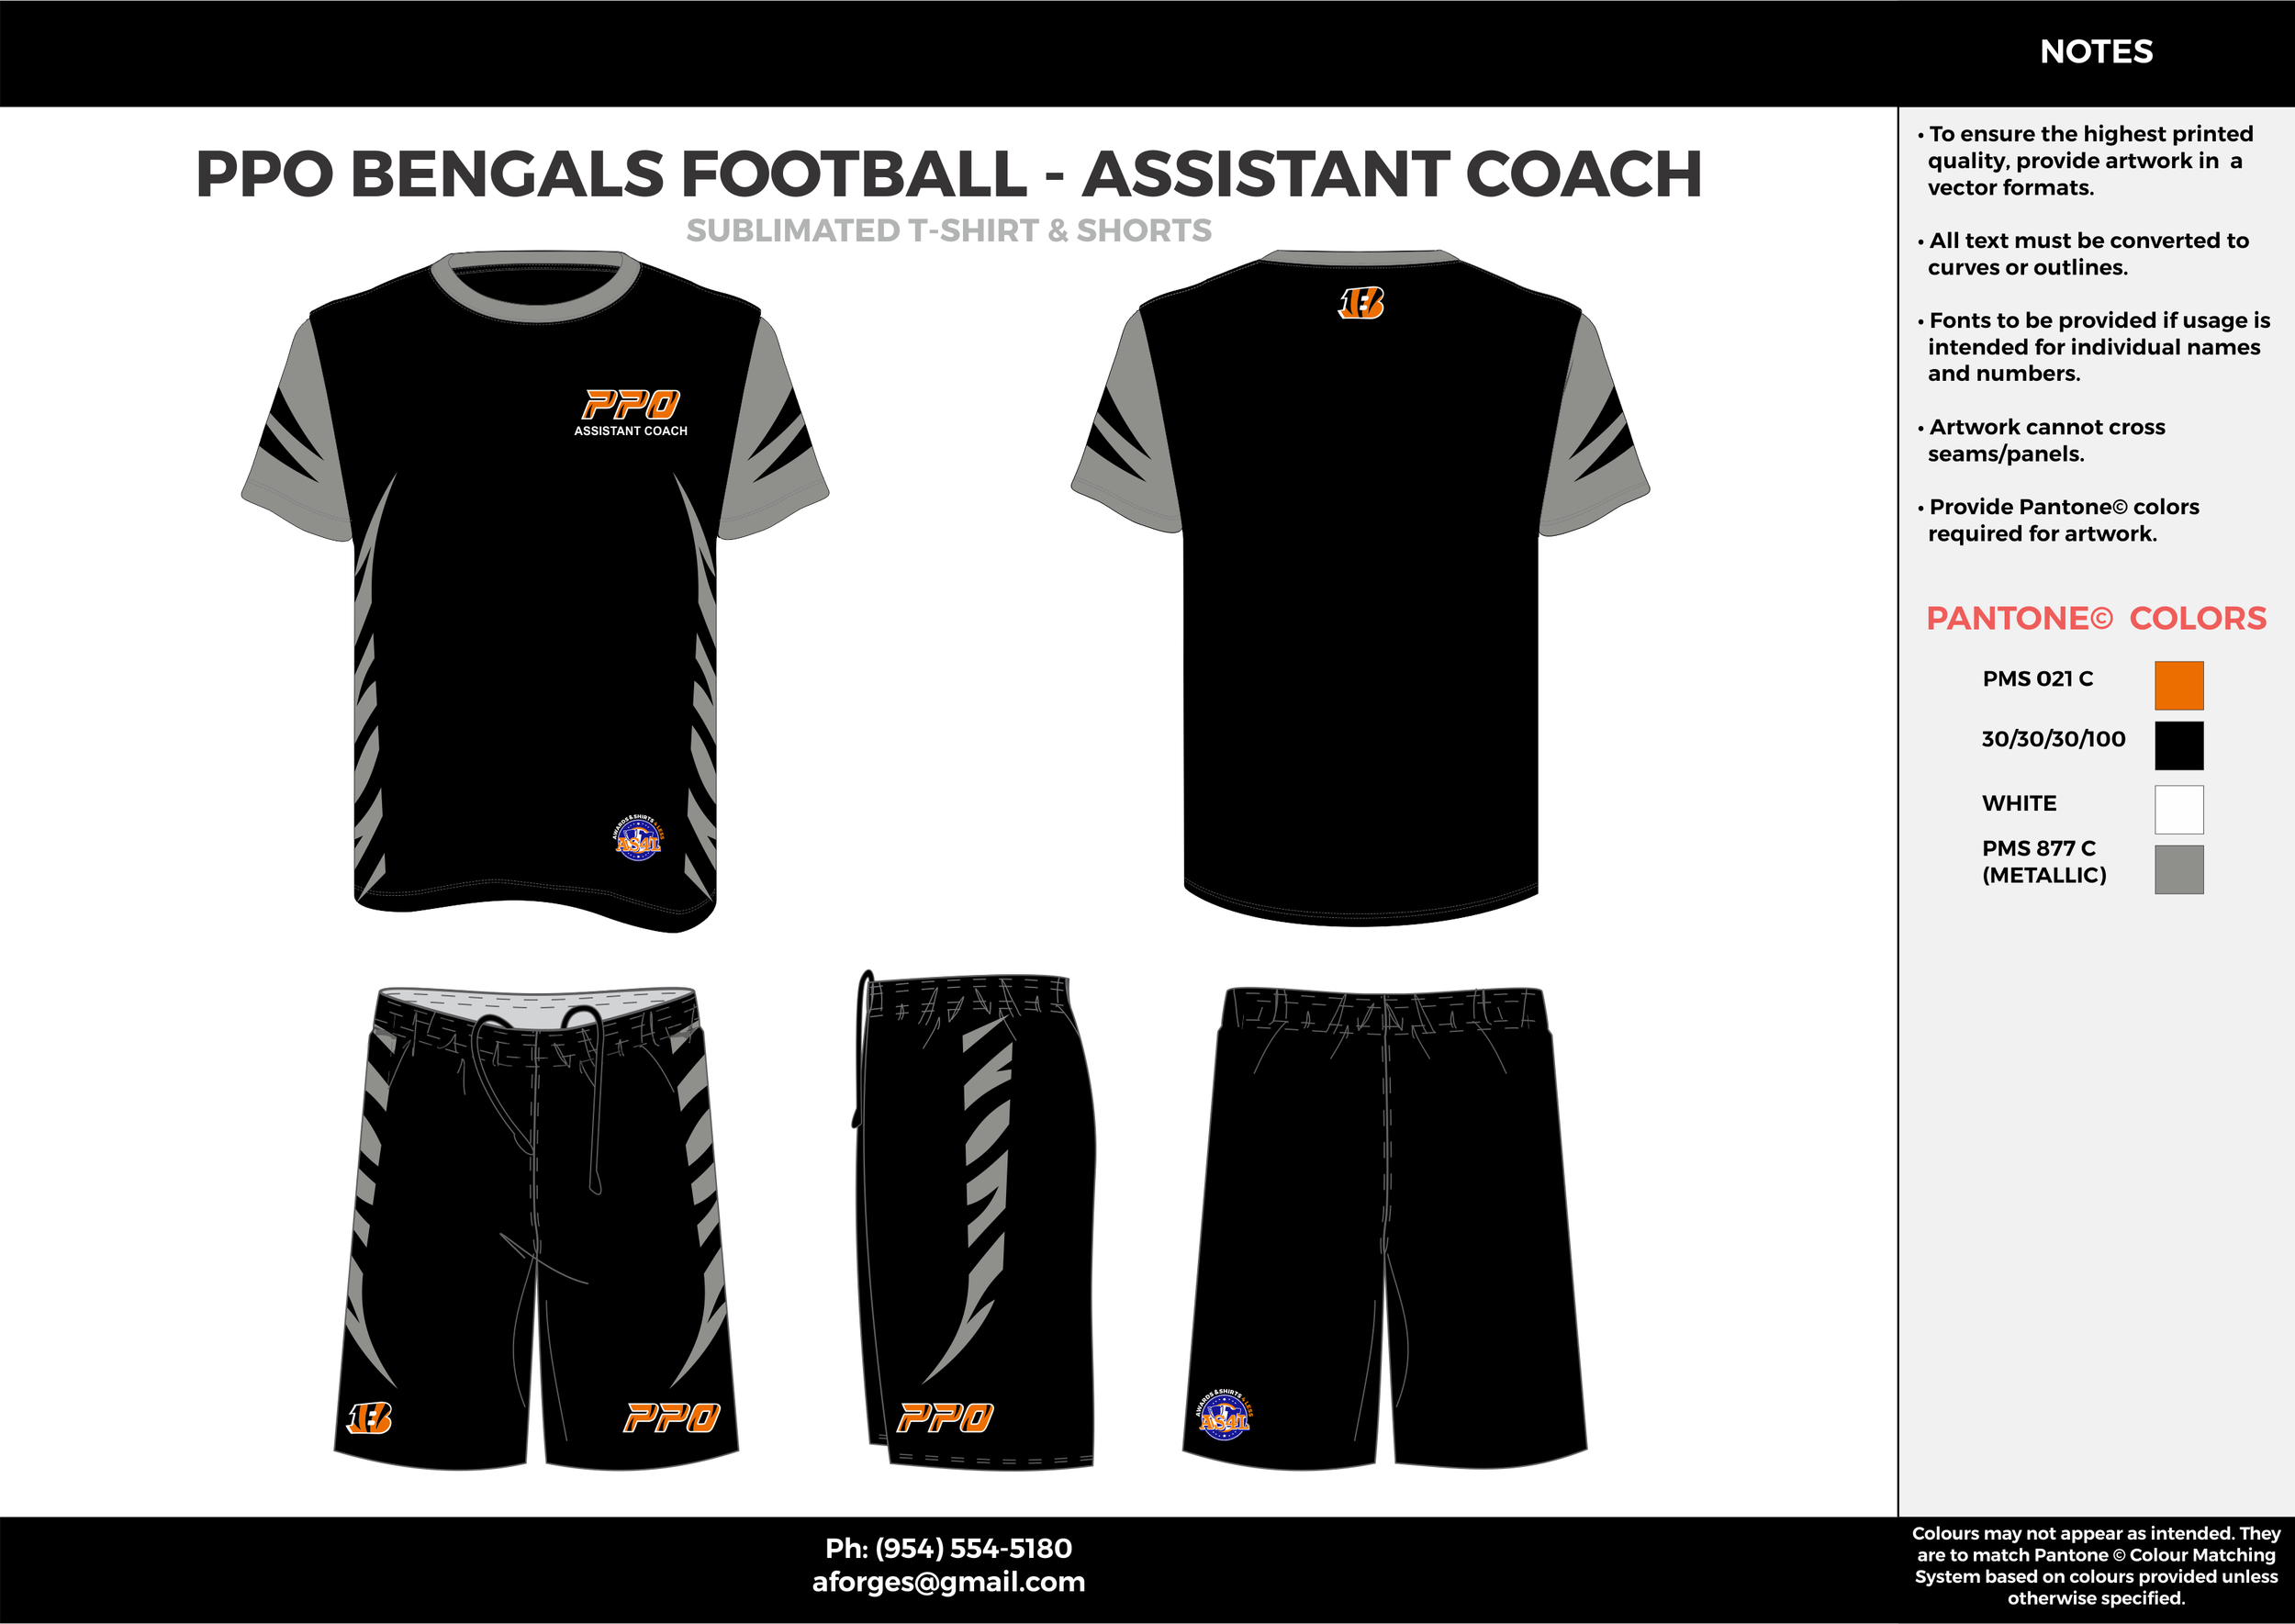 PPO BENGALS FOOTBALL - ASSISTANT COACH Black Gray Orange Football uniforms jerseys and shorts